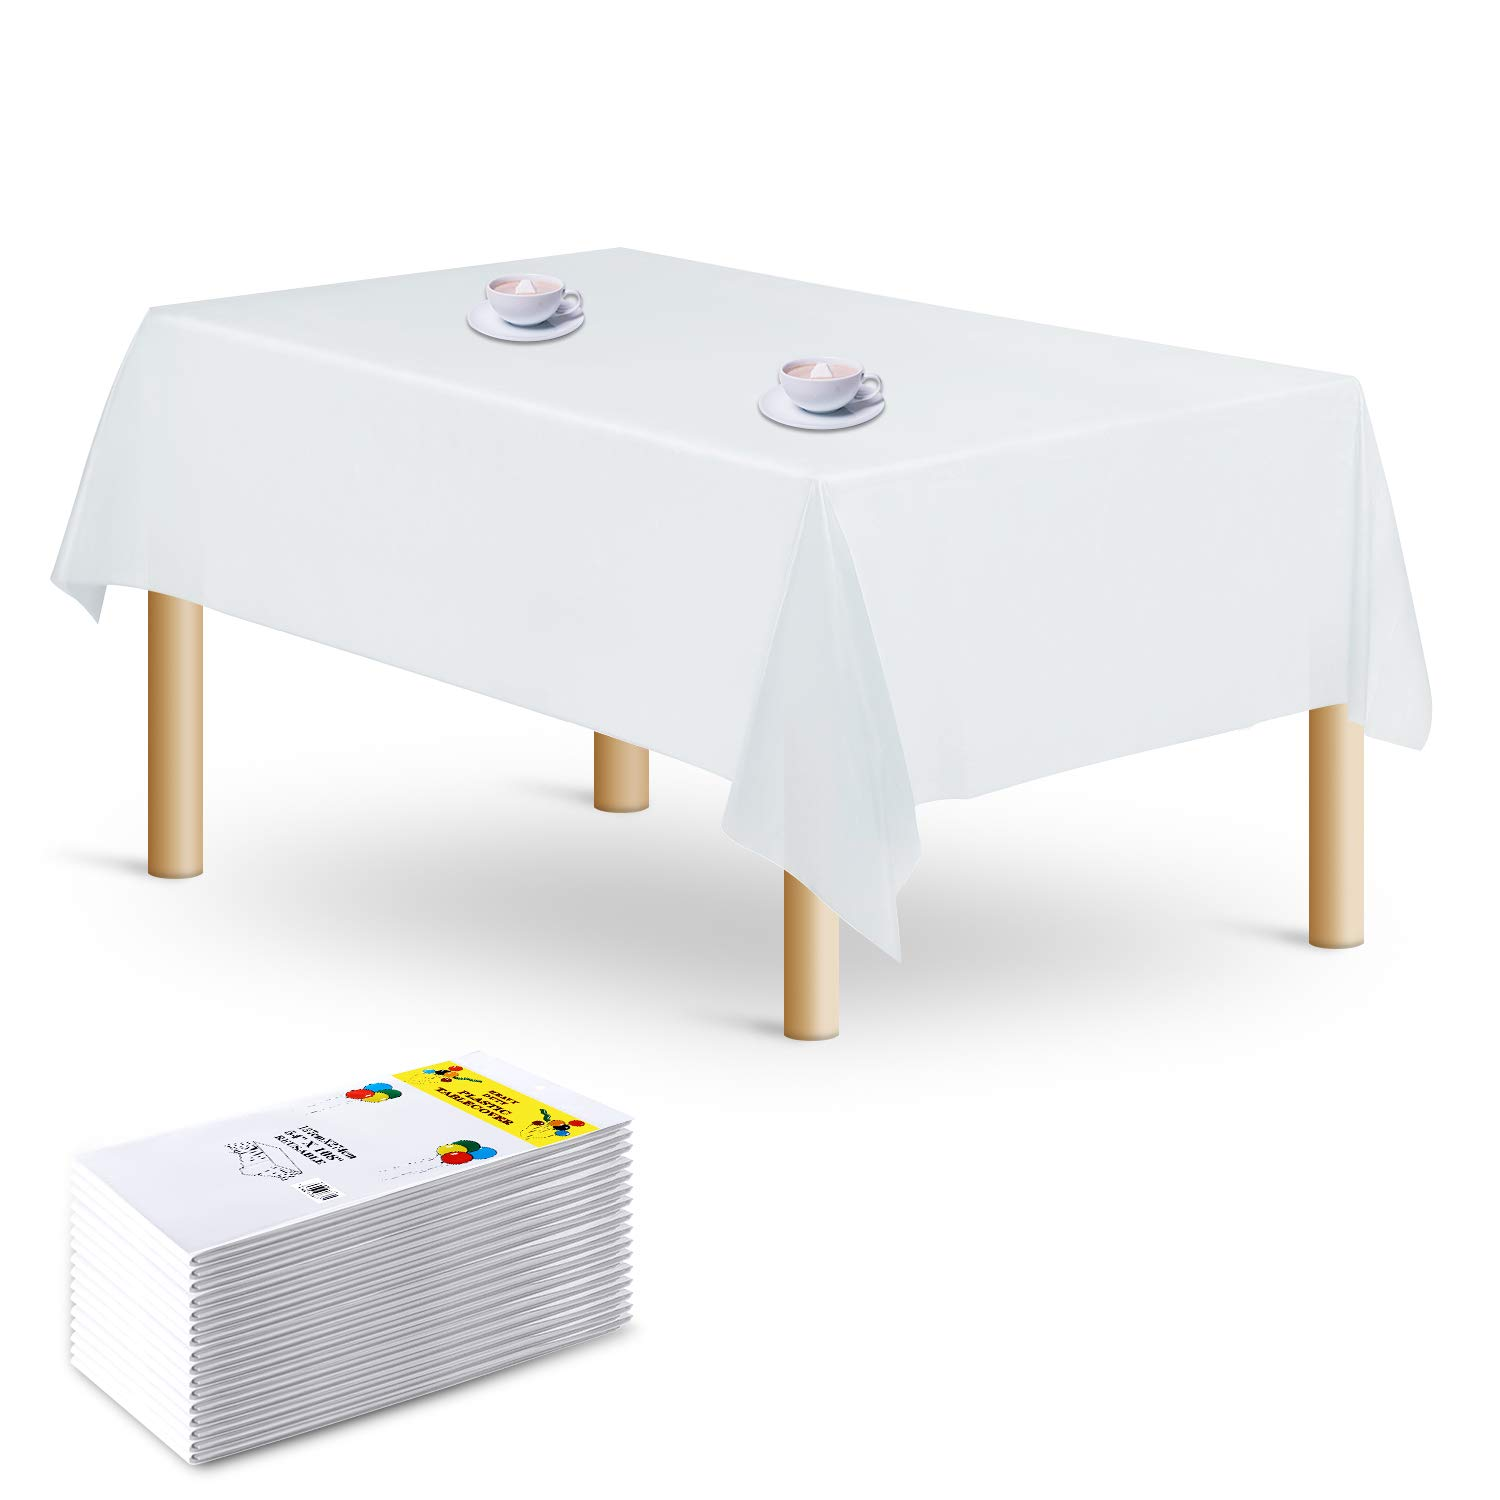 Rectangle Plastic Tablecloth - 16 Packs Premium Disposable Table Cloths Table Covers 54'' x 108'' for Wedding or Parties 6 to 8 Foot Tables (White) by TRSNLE